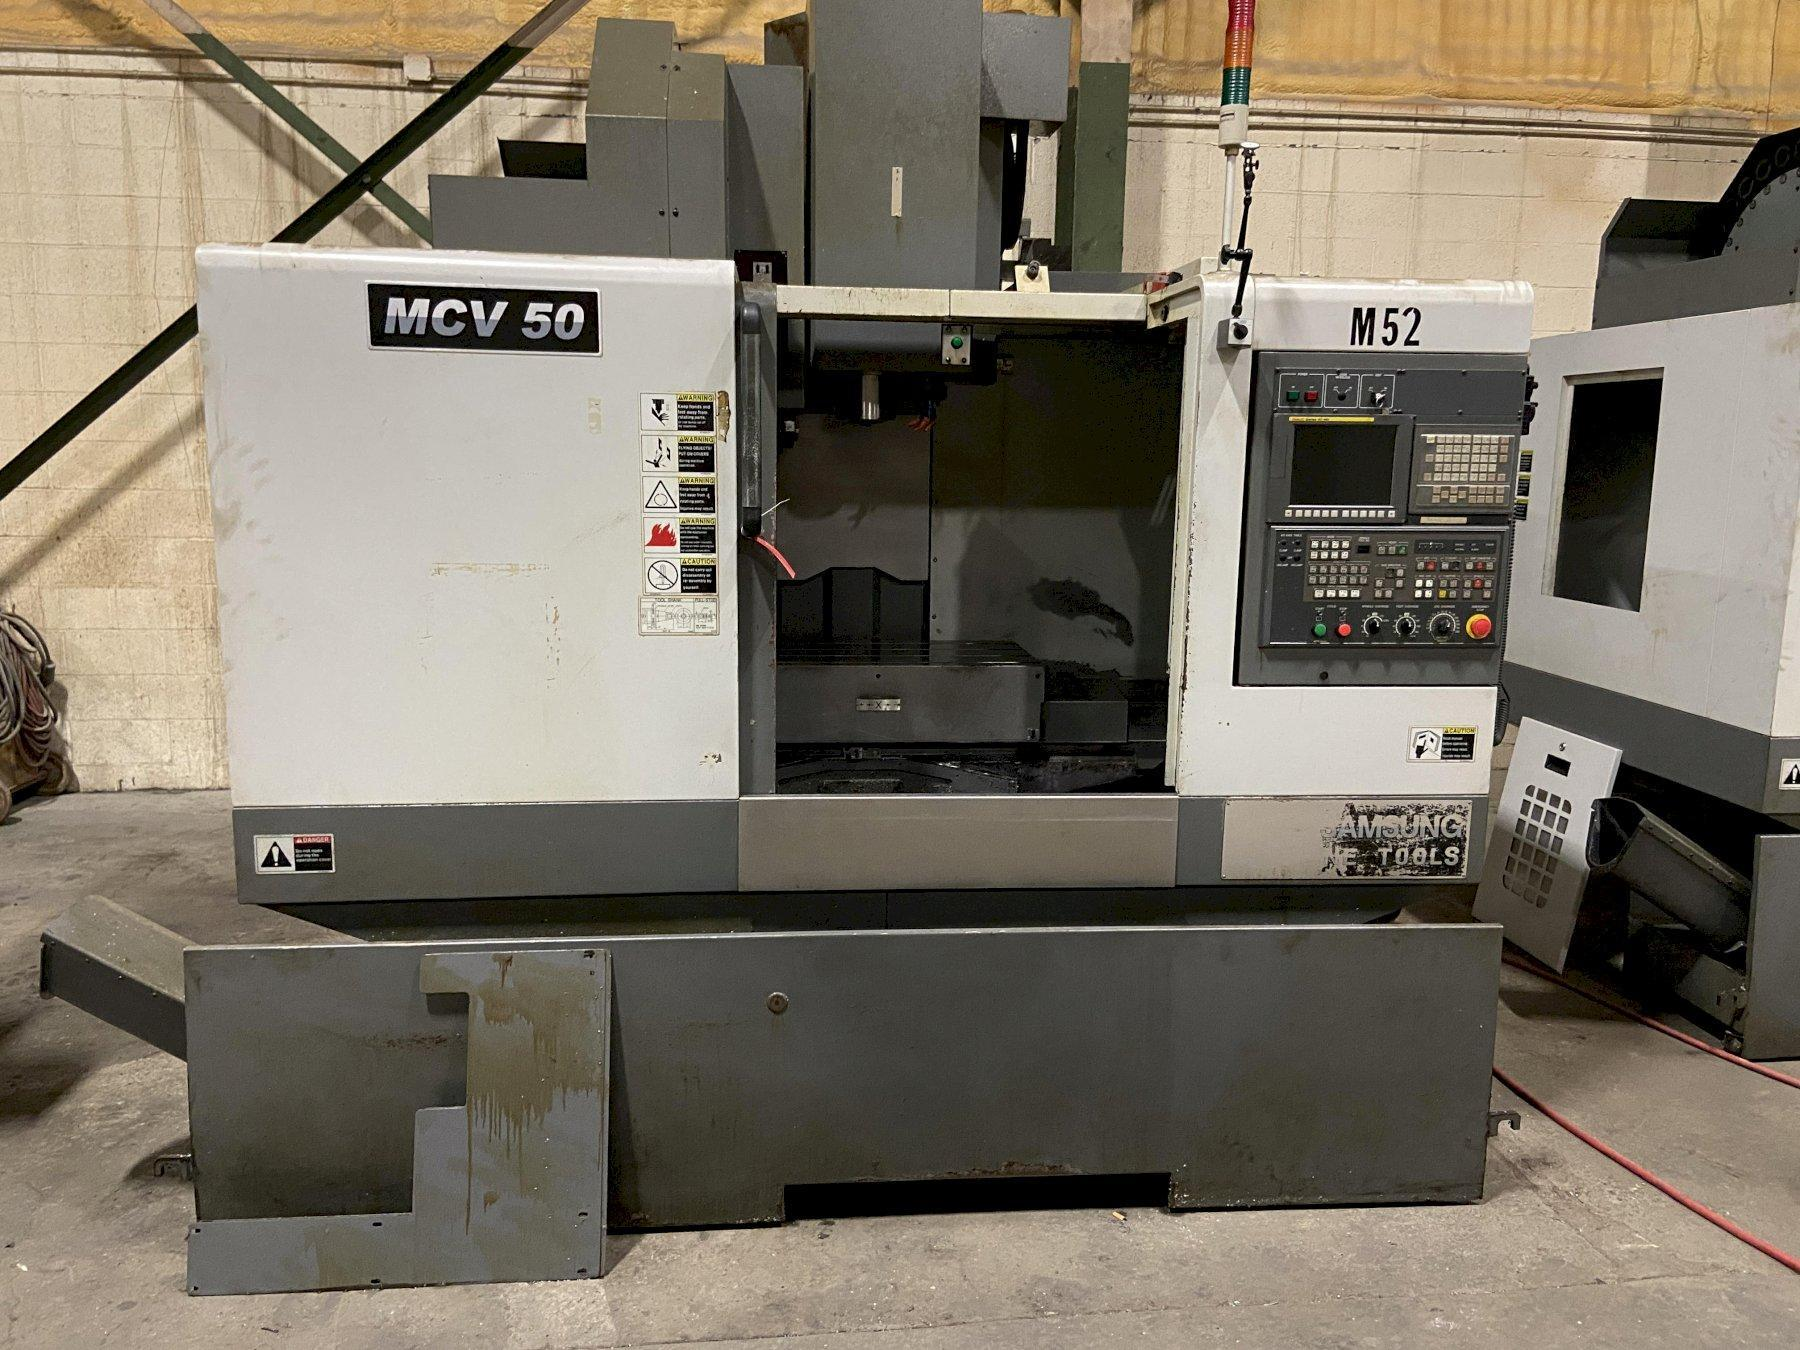 Samsung MCV-50 CNC Vertical Machining Center, Fanuc Oi, 35.43